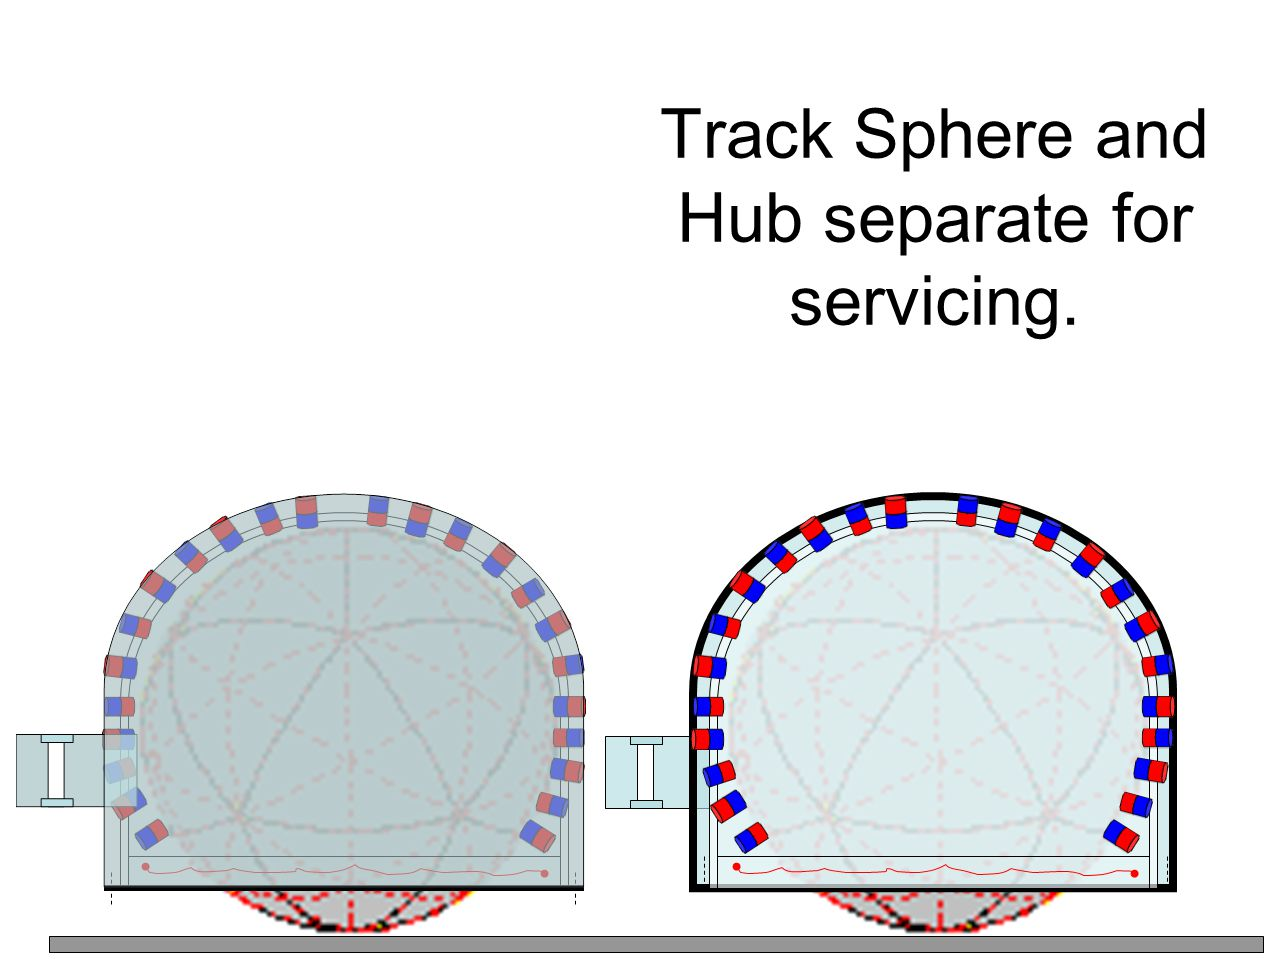 Track Sphere and Hub separate for servicing.